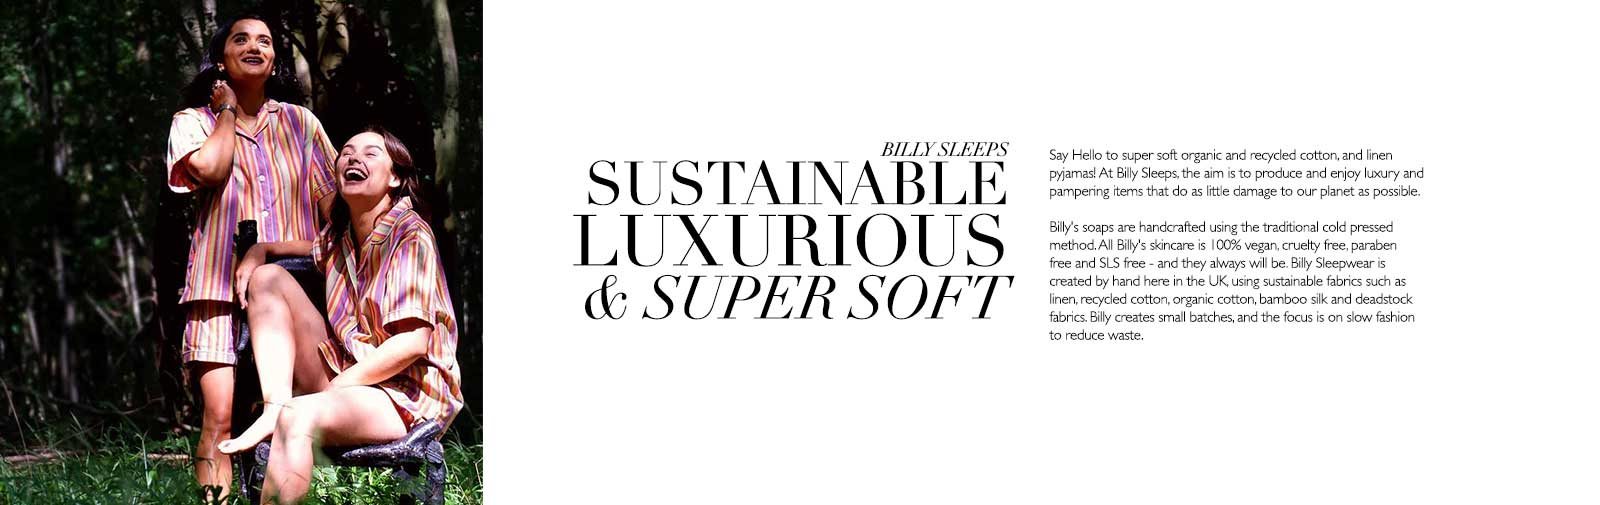 Say Hello to super soft organic and recycled cotton, and linen pyjamas! At Billy Sleeps, the aim is to produce and enjoy luxury and pampering items that do as little damage to our planet as possible.   Billy's soaps are handcrafted using the traditional cold pressed method. All Billy's skincare is 100% vegan, cruelty free, paraben free and SLS free - and they always will be. Billy Sleepwear is created by hand here in the UK, using sustainable fabrics such as linen, recycled cotton, organic cotton, bamboo silk and deadstock fabrics. Billy creates small batches, and the focus is on slow fashion to reduce waste.